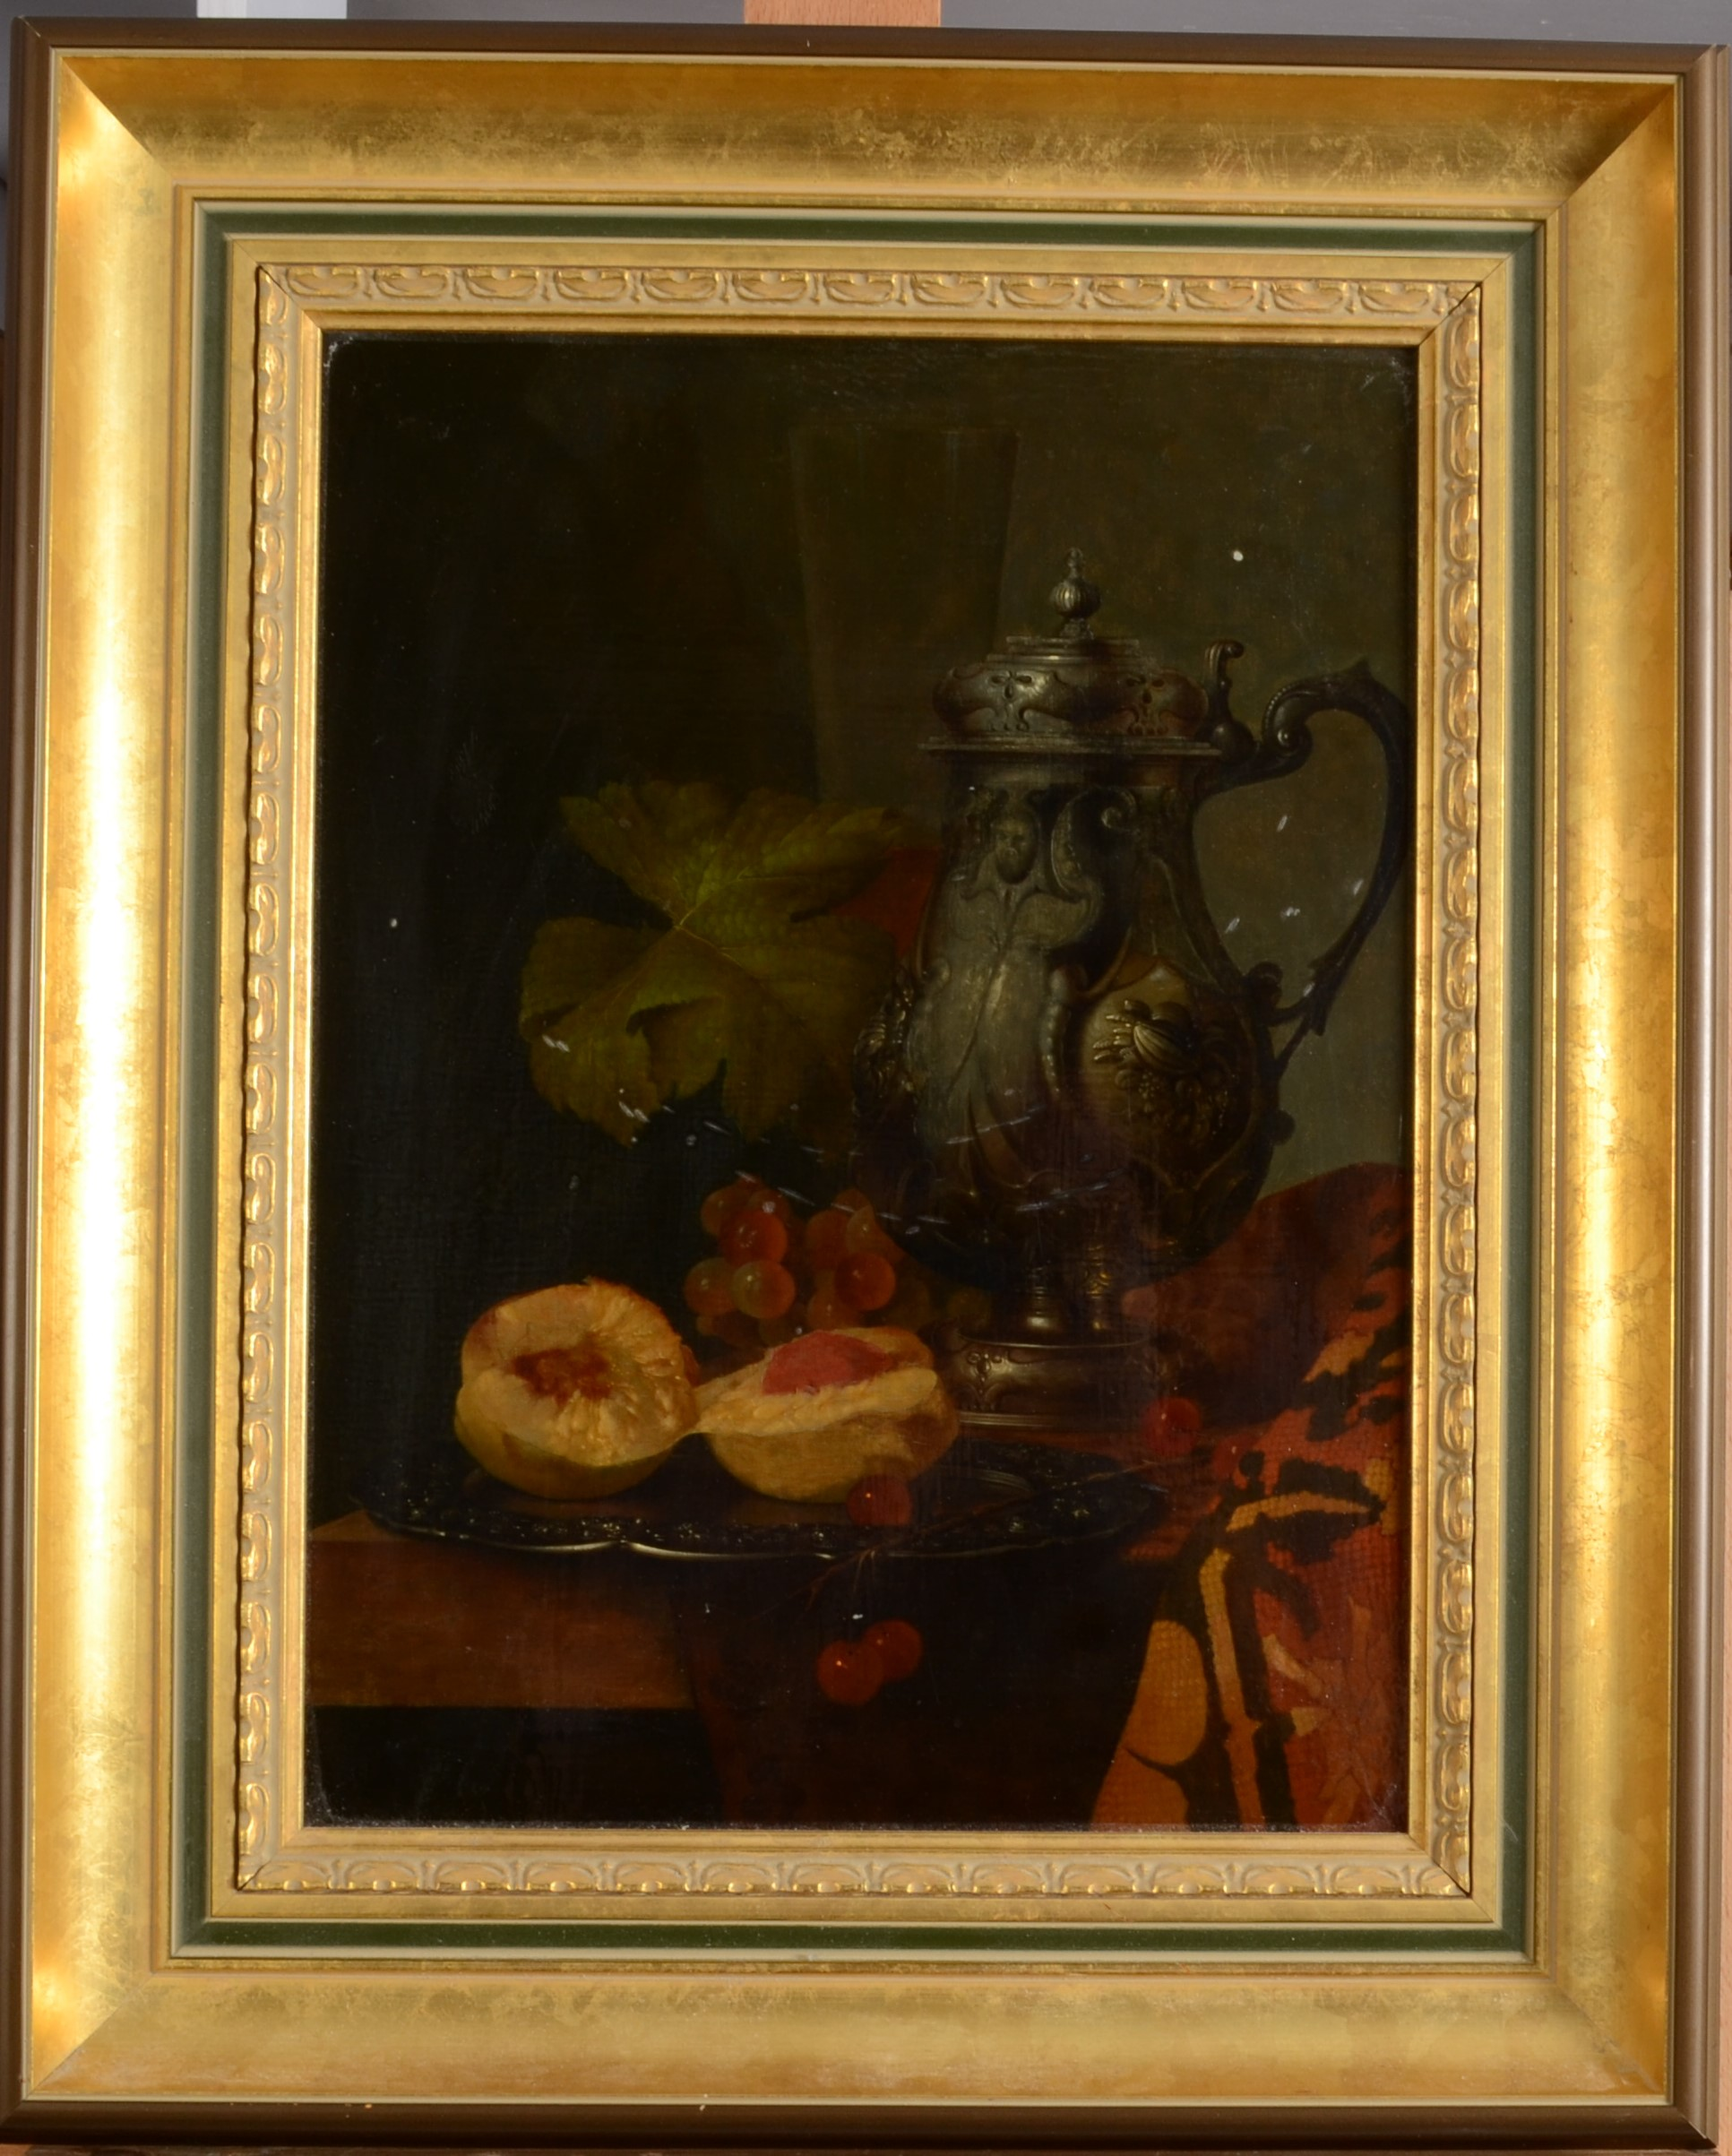 Lot 45 - ANDREAS GYULA BUBARNIK Still Life With Grapes and Peweter Oil on board 38 x 29 cm